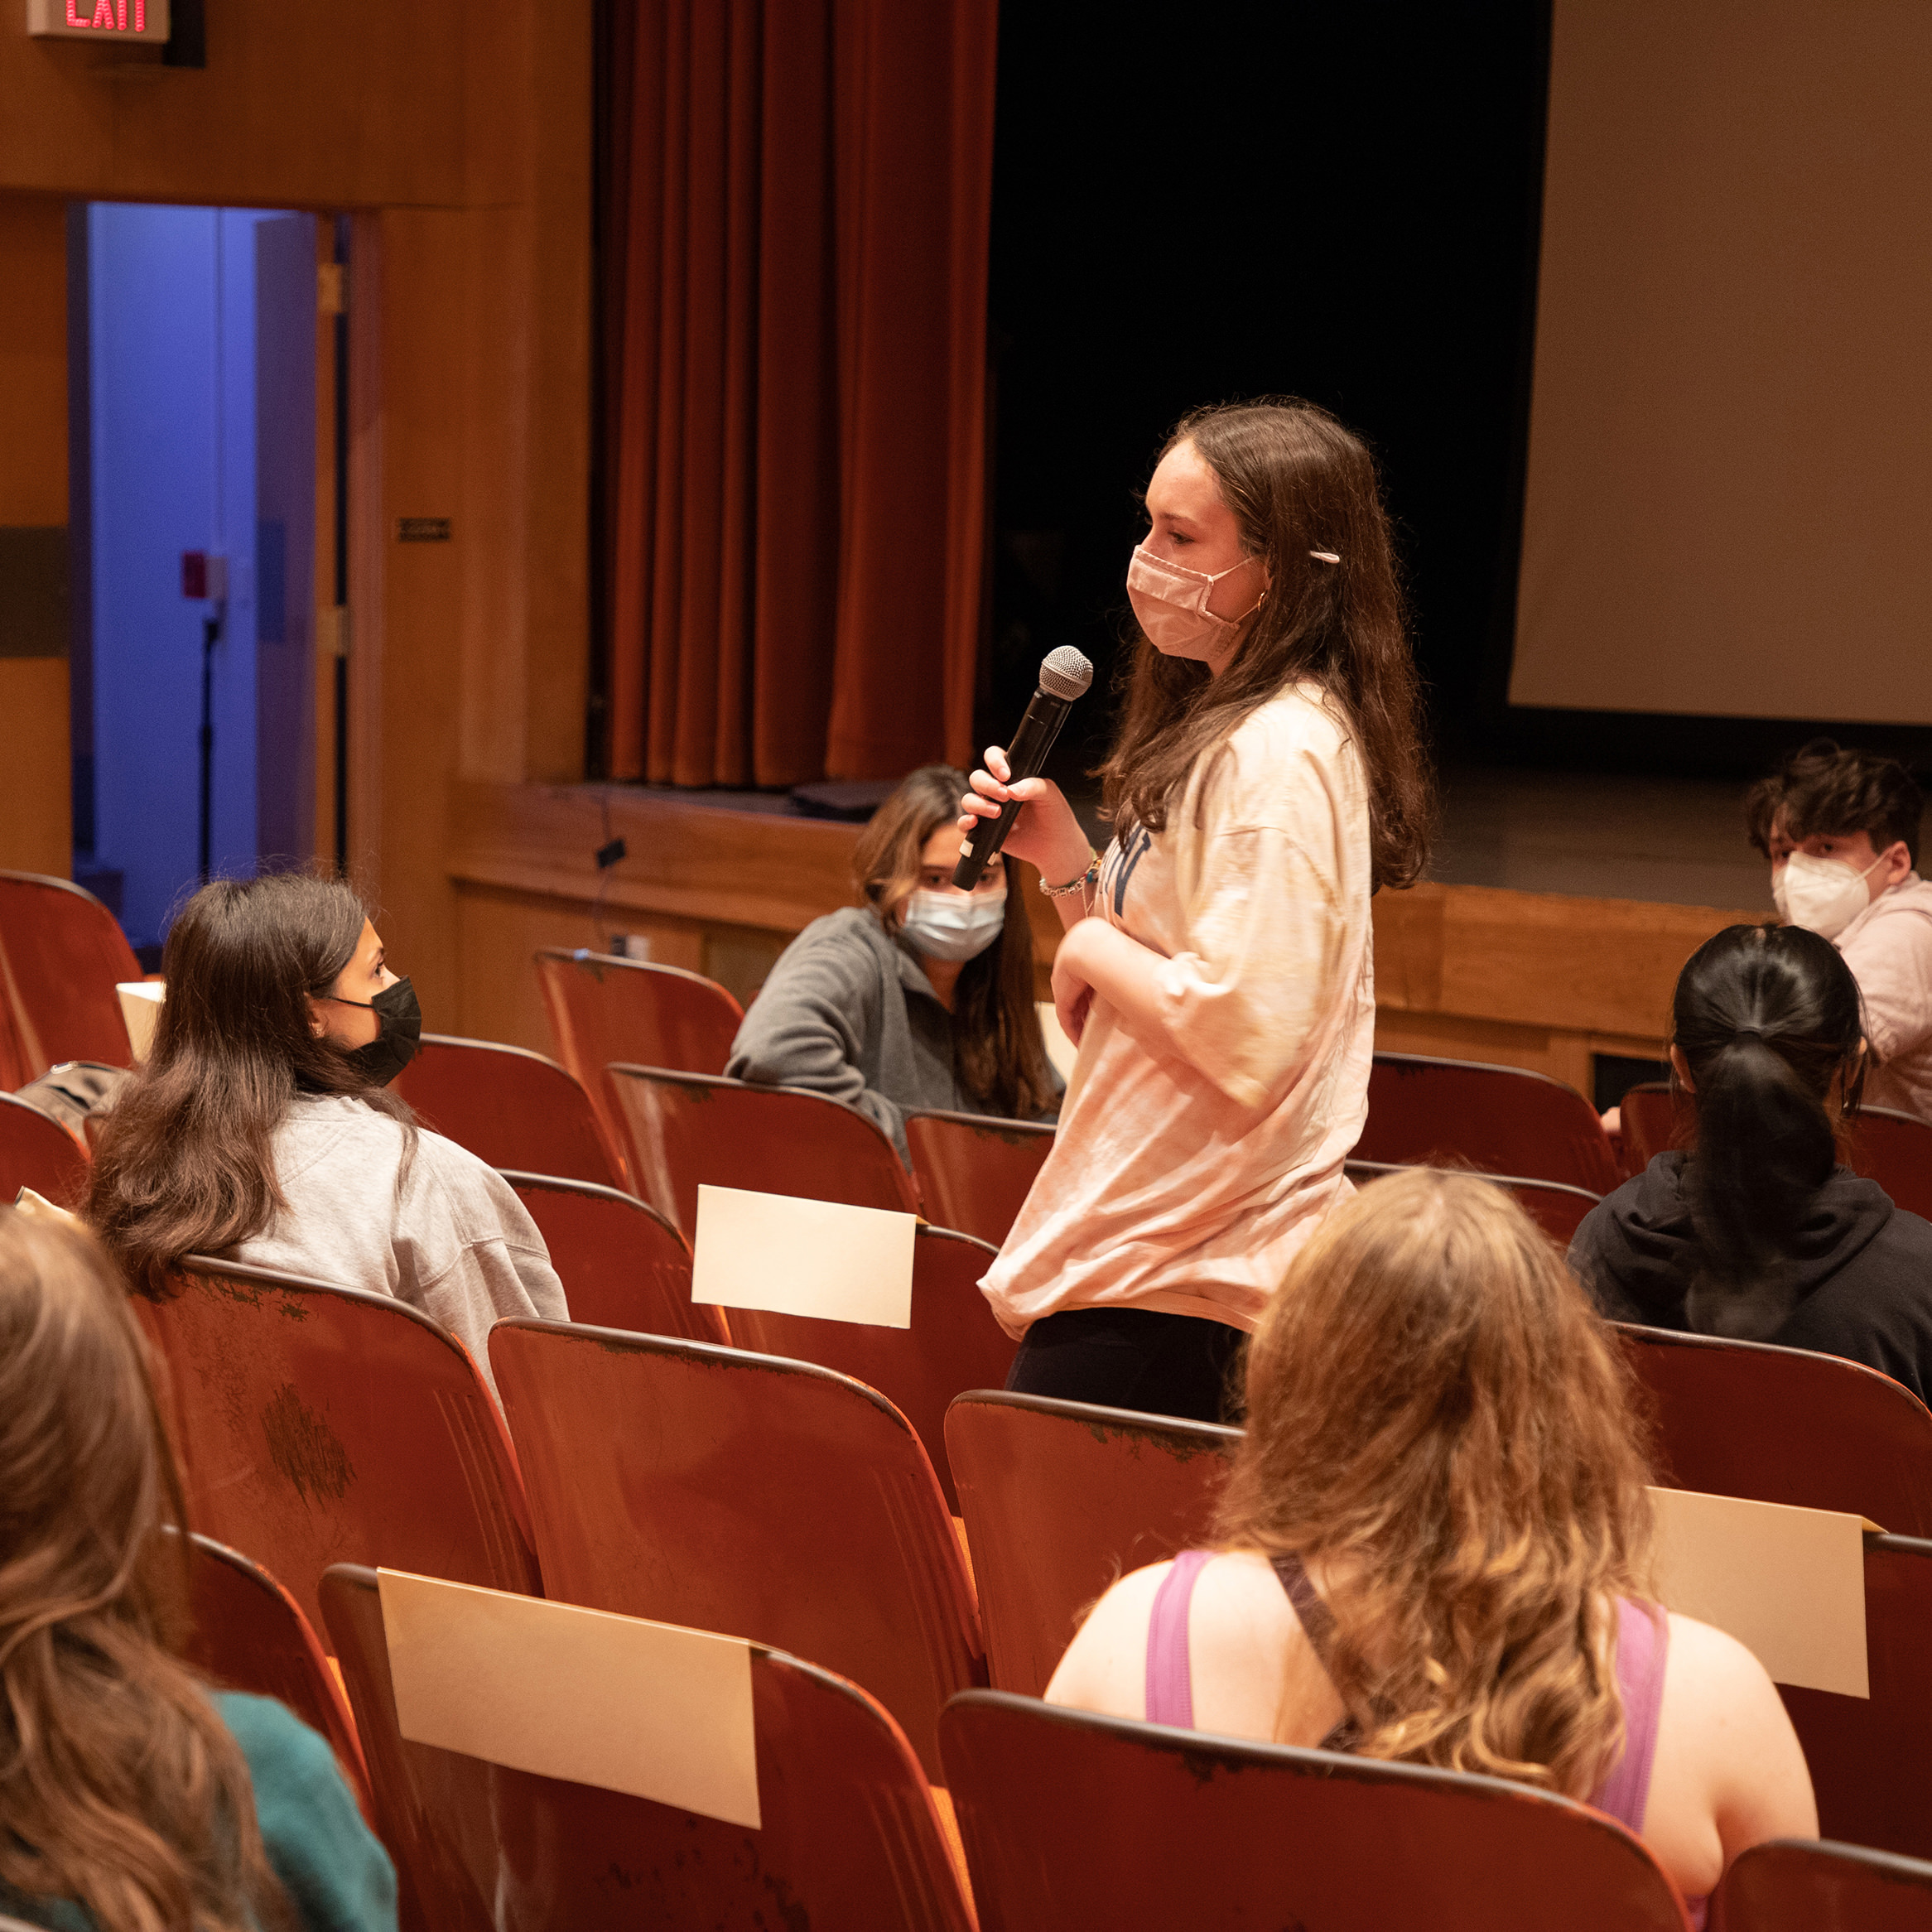 A student discusses their thoughts on the movie following the screening